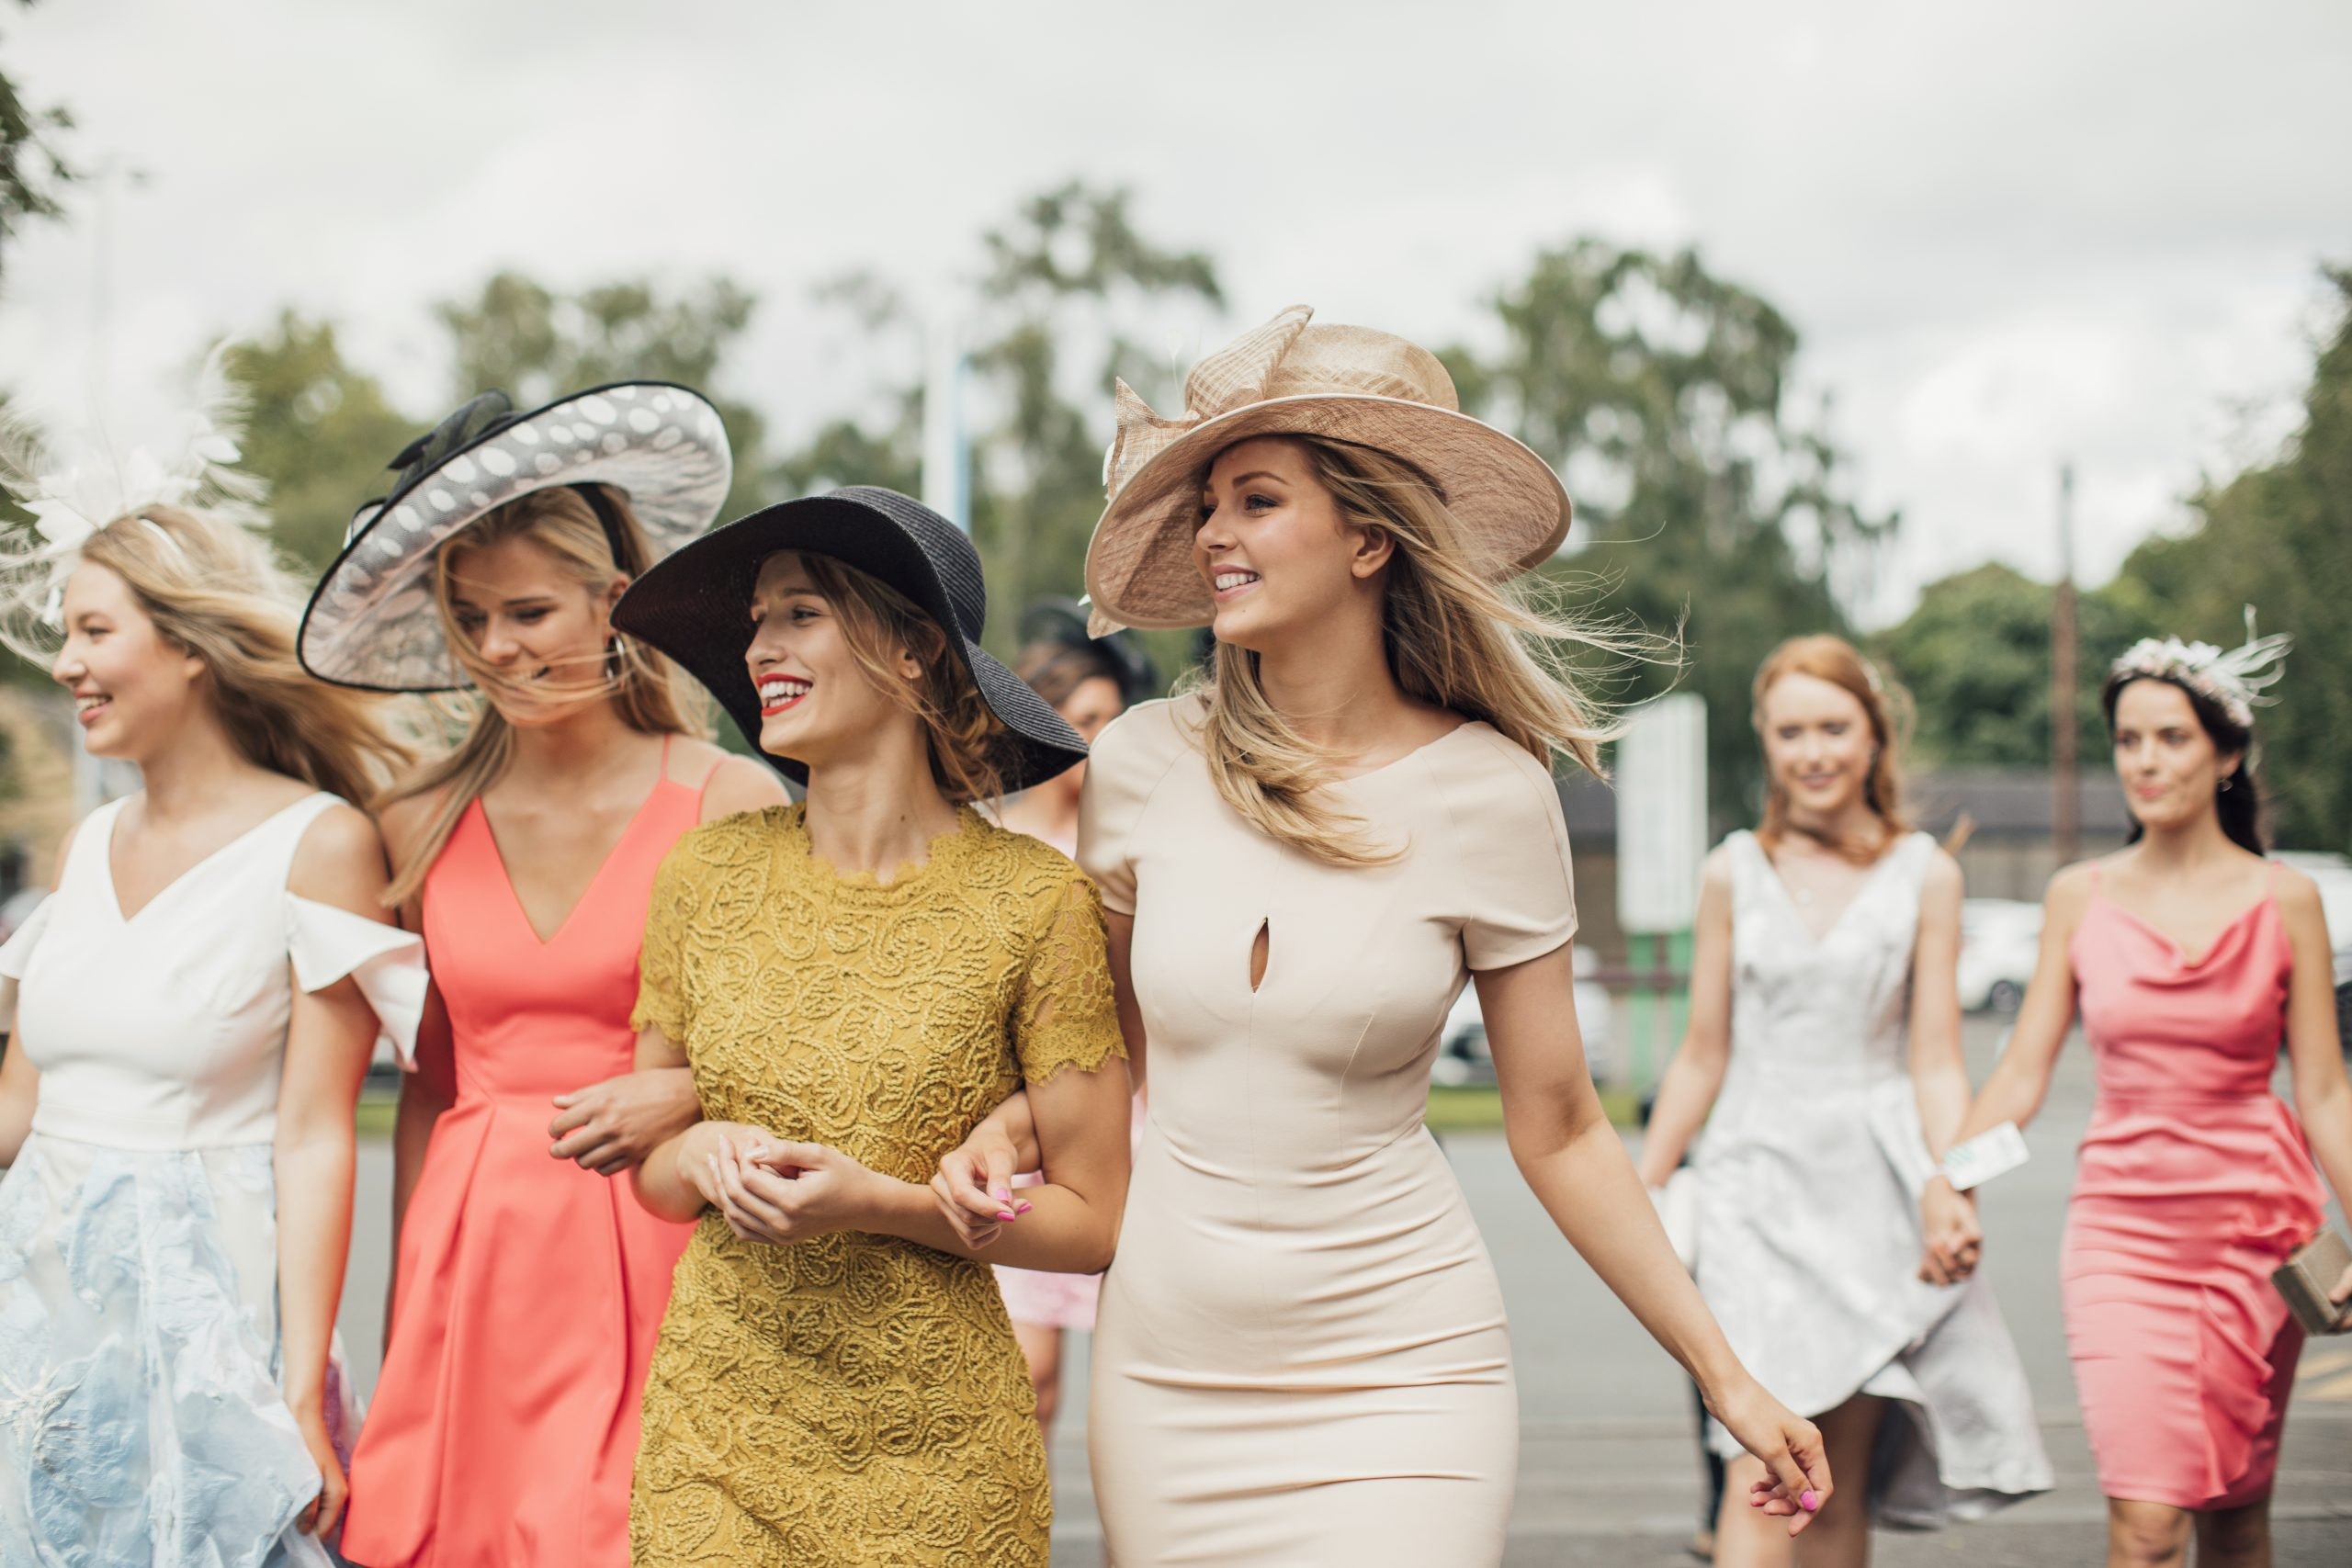 A stylist's guide to wedding guest attire for 2021 | IMAGE.ie